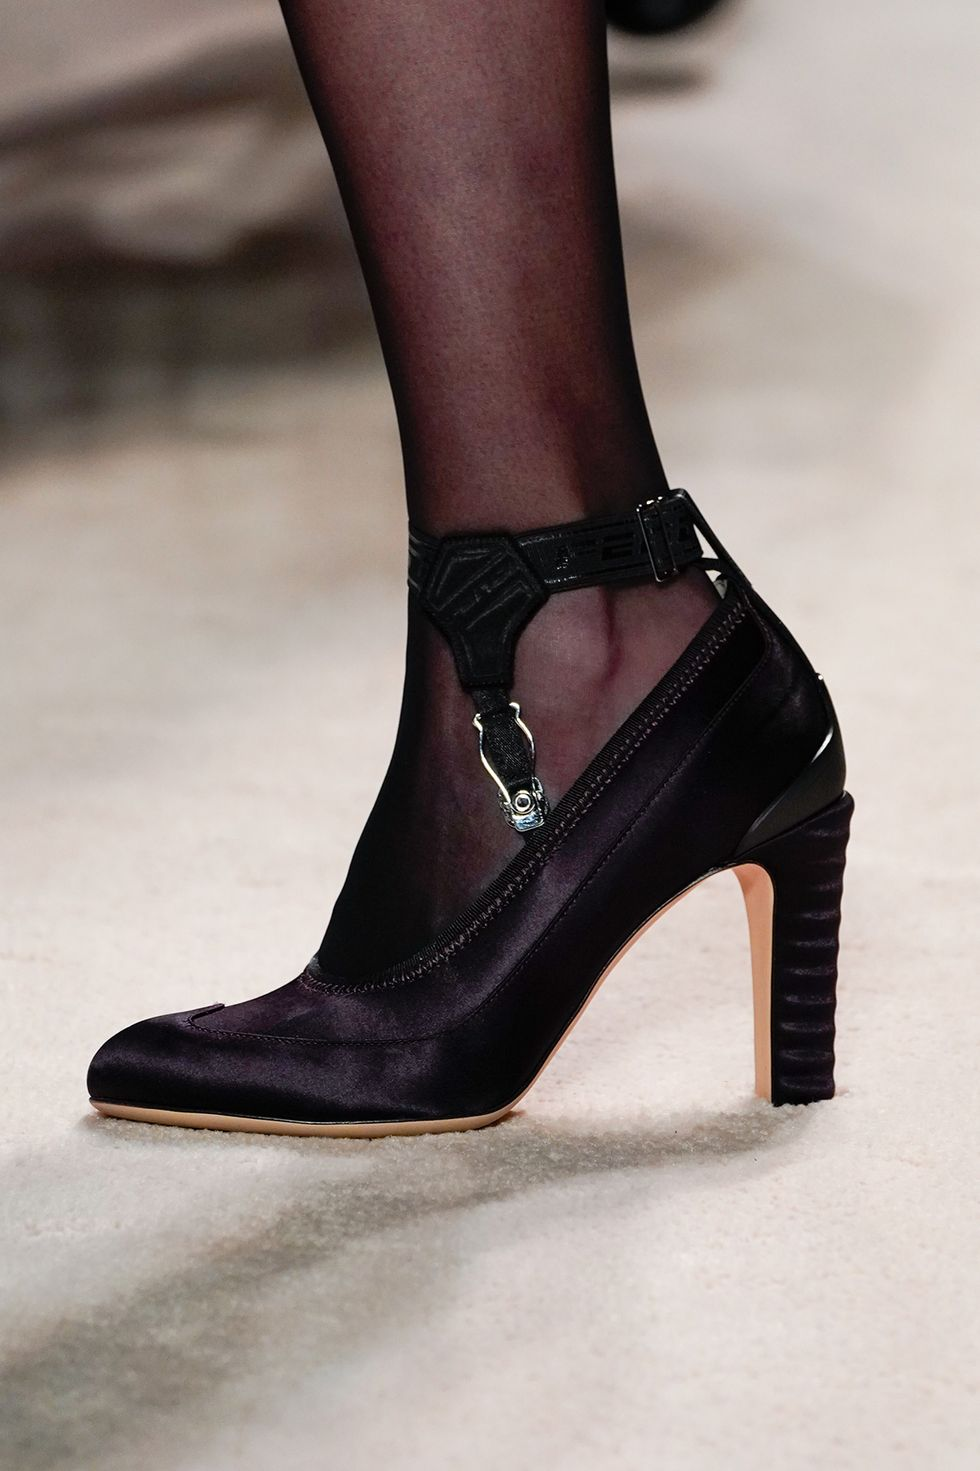 fendi-fall-2020-runway-shoes-satin-heel-1582236669.jpg (980×1471)